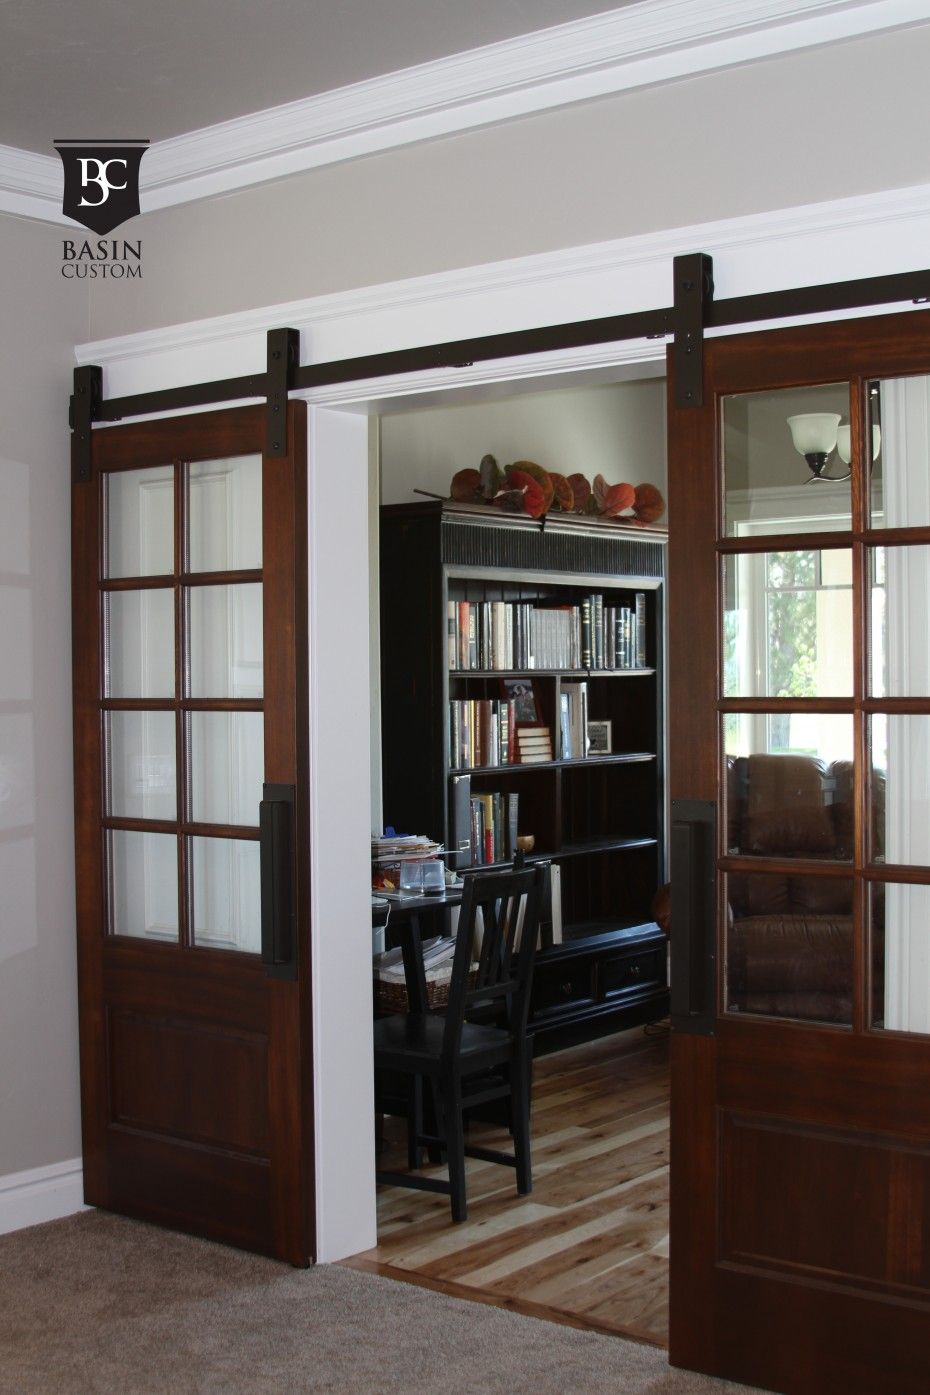 Inspiration Interior Prissy Barn Doors Vintage Architectural Element Ideas Grandiose Half Gl 8 Panels Double With Iron